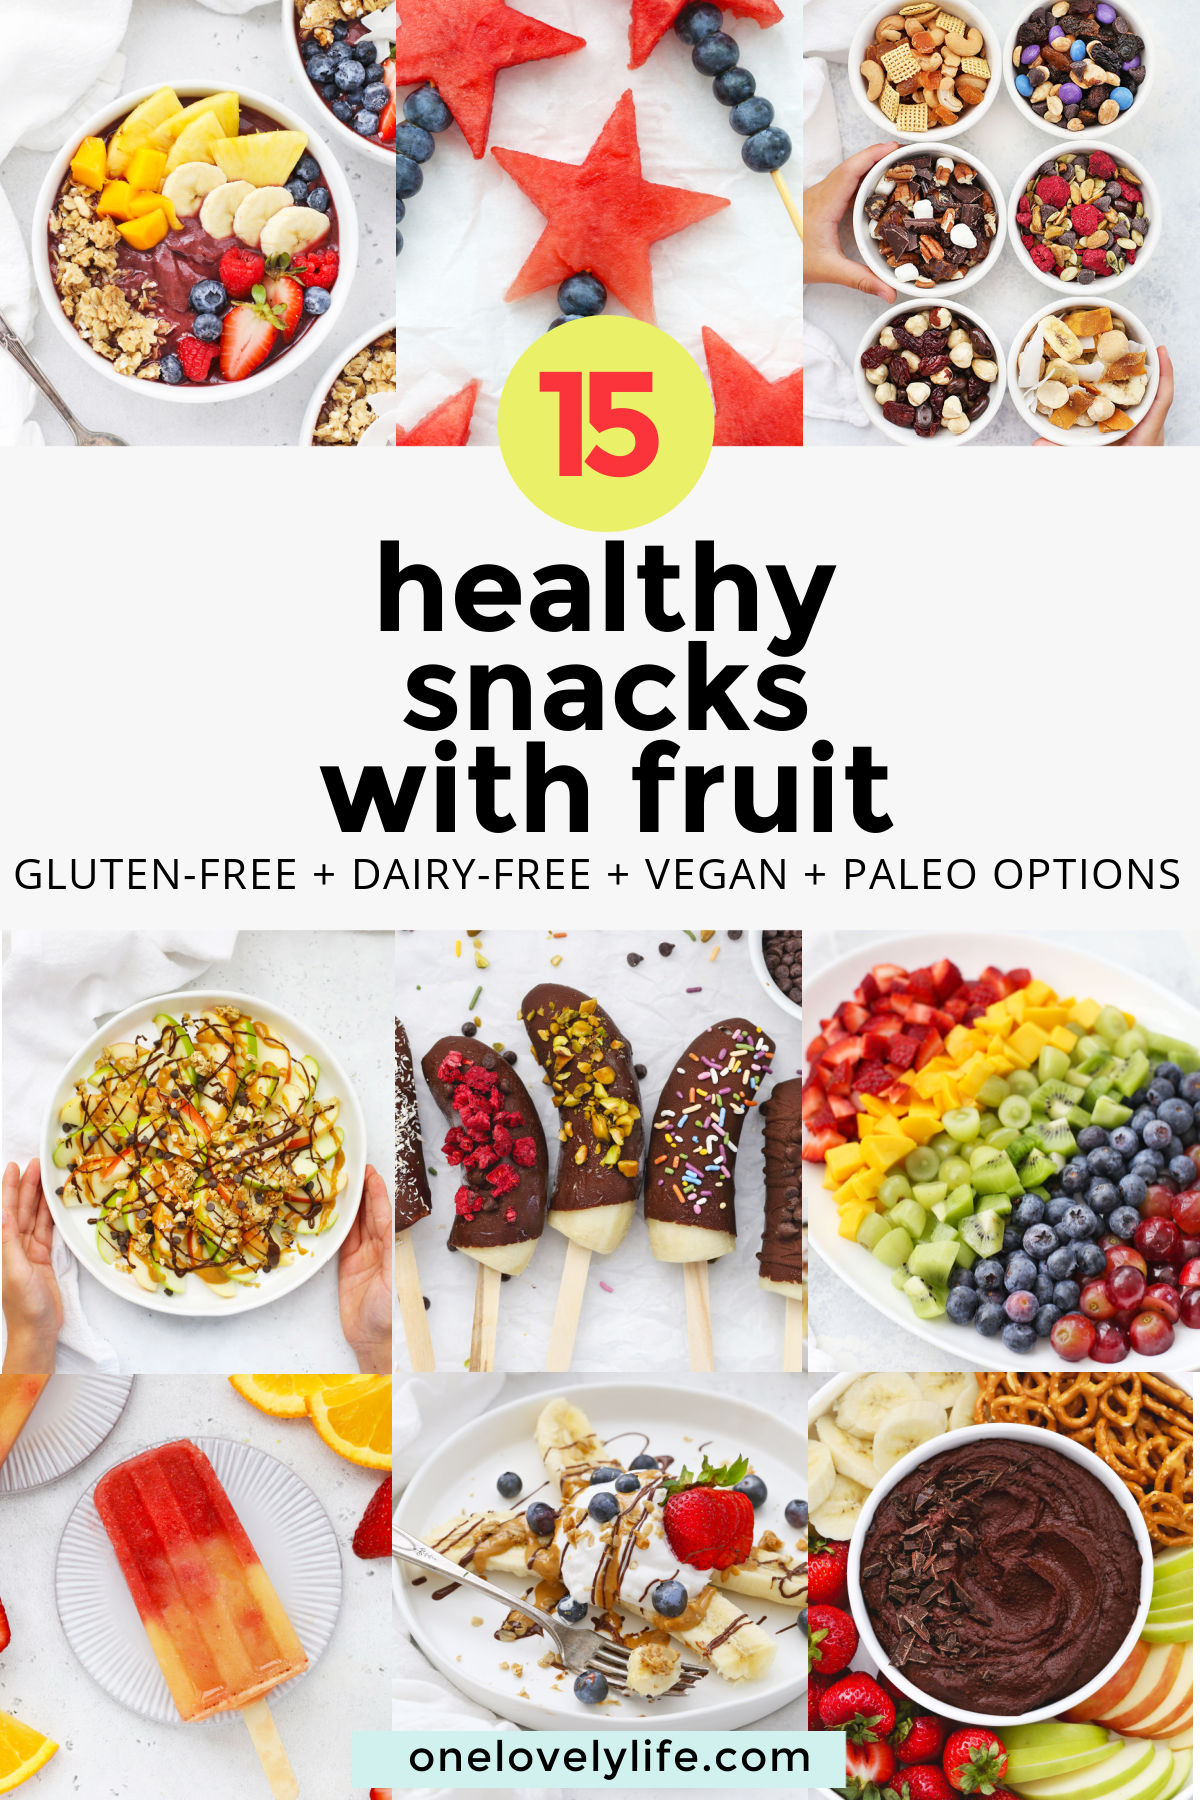 15+ Healthy Snacks with Fruit - These Healthy Snack Ideas are totally kid approved! (Gluten free, vegan, and paleo options!) // Healthy kids Snacks // Healthy Snacks for Kids #healthysnack #kidssnacks #funsnack #fruit